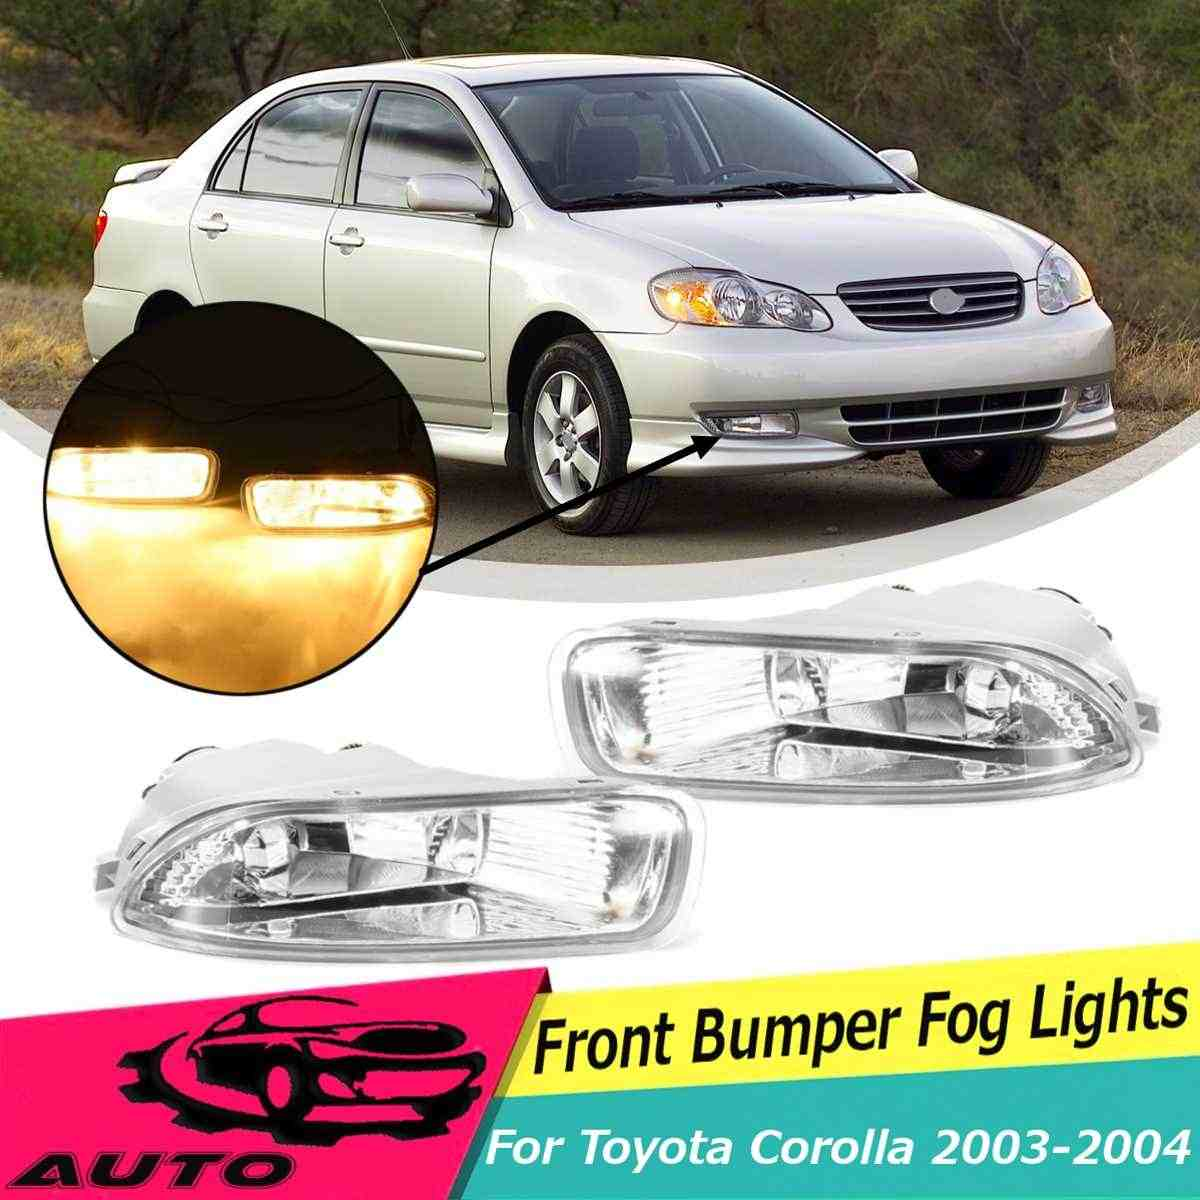 1 Pair Fog Light For Toyota Corolla 2003 2004 Car Bumper Lamp Clear Lens With Bulb High Brightness  Replacement 81200-02060